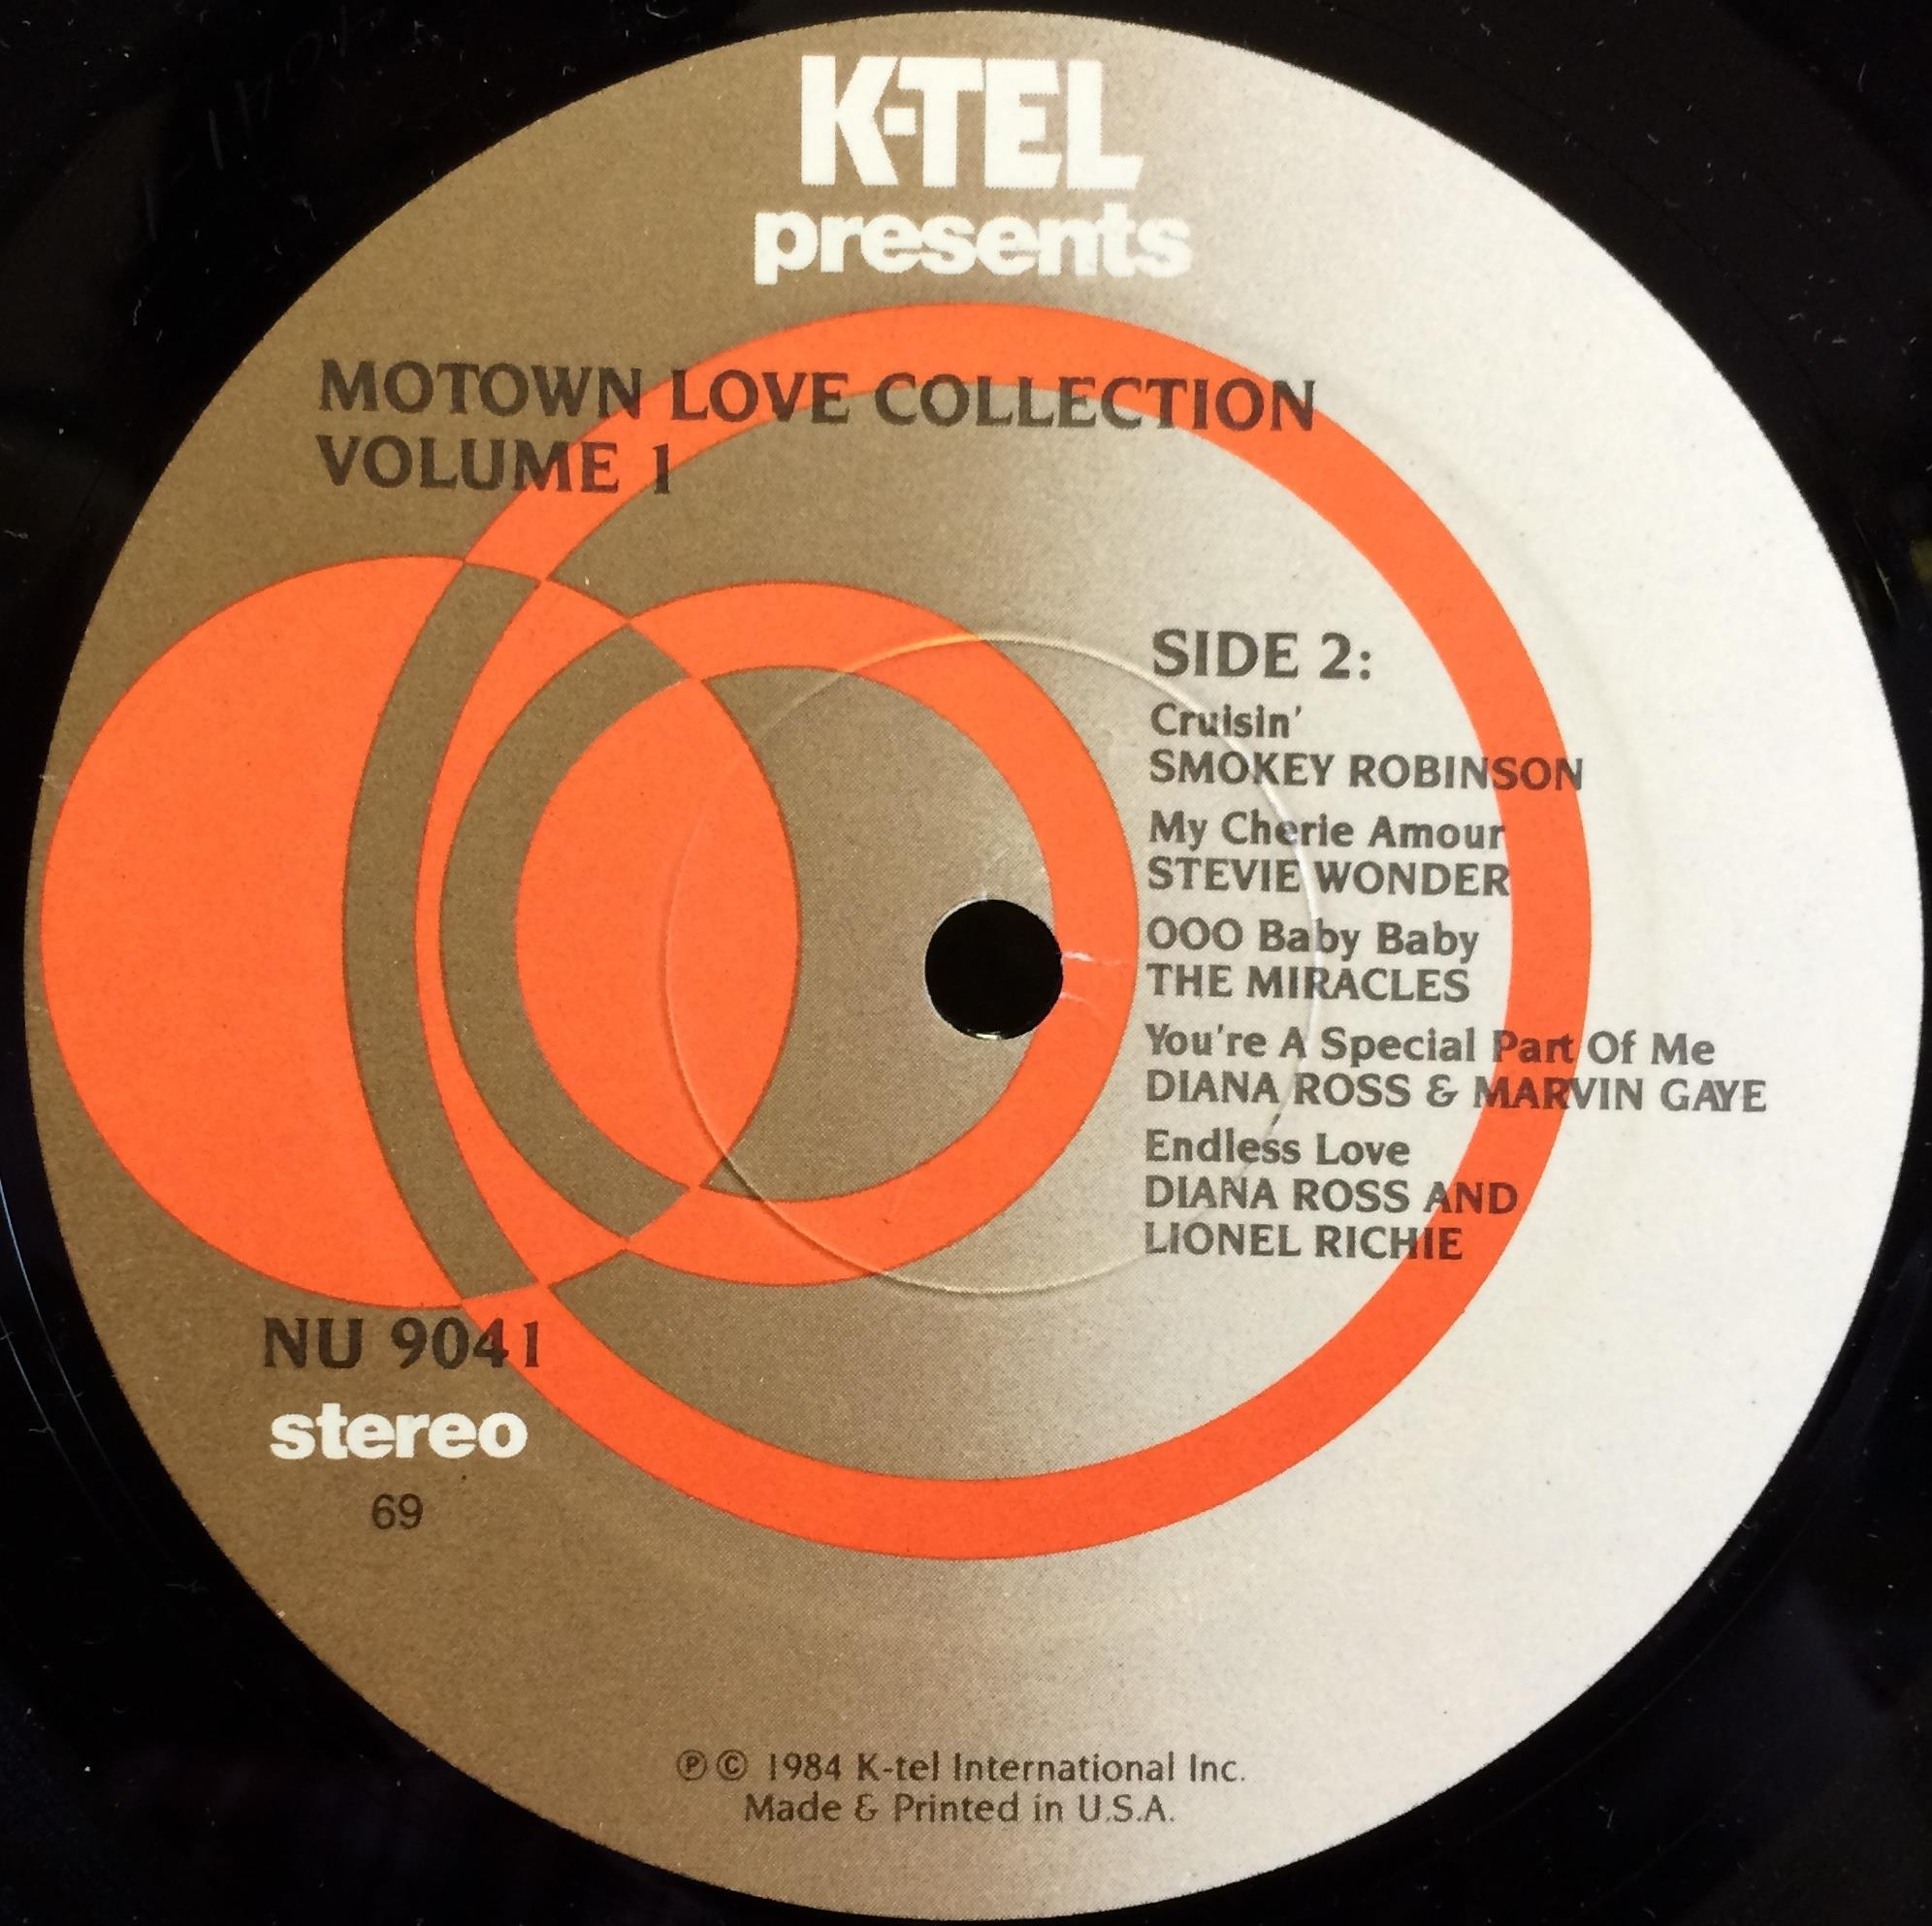 K-Tel Soul Comp - K-tel Soul Comp Motown Love Collection Vol 1 Lp Vg+ Nu 9041 Vinyl 1984 Record (motown Love Collectio